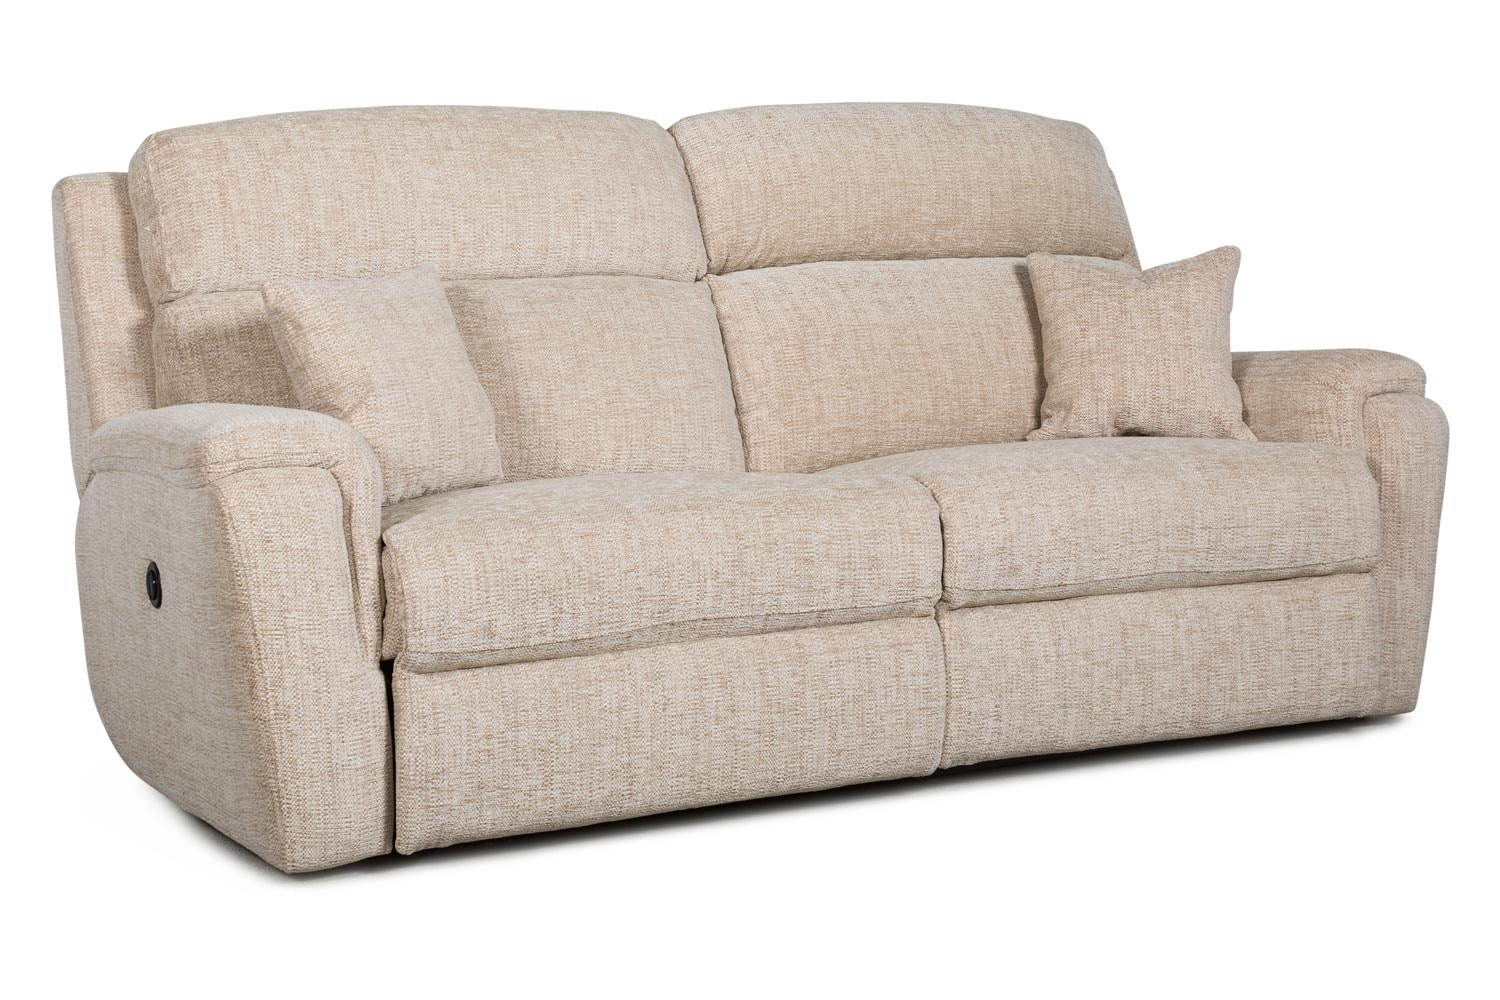 Samey 3 Seater Recliner Sofa